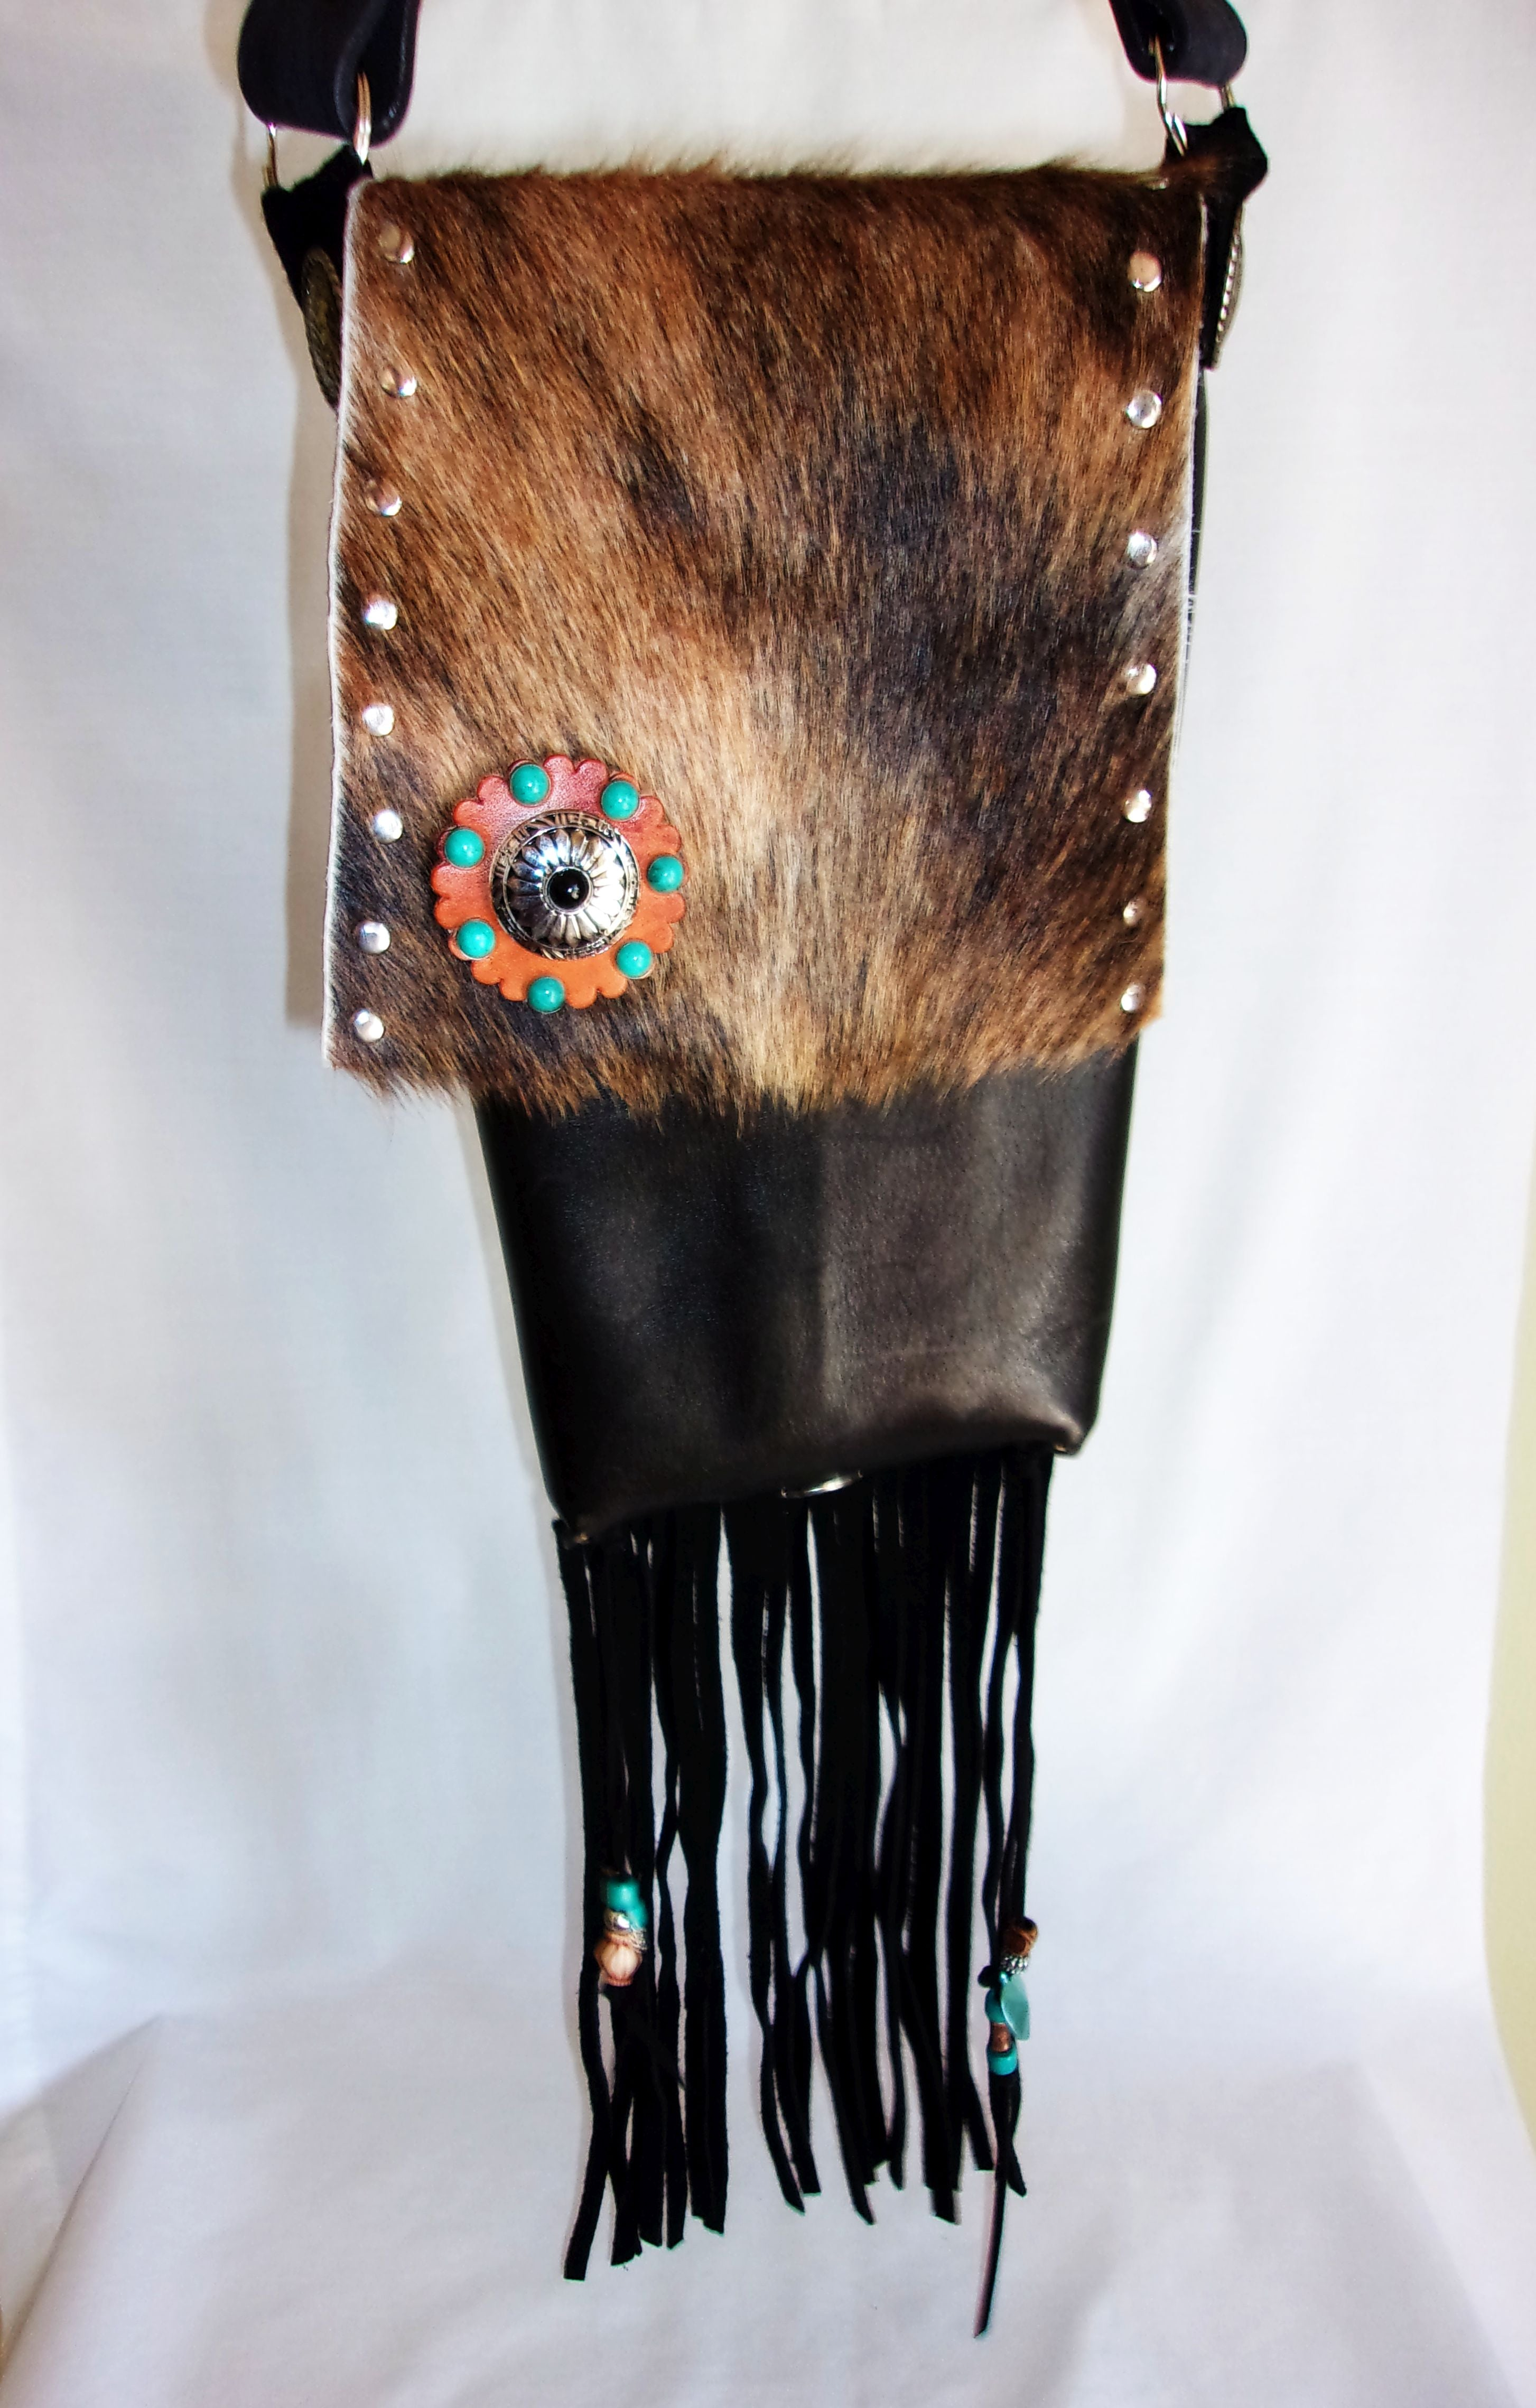 Hair on Hide Bag HH40 - Cowboy Boot Purses by Chris Thompson for Distinctive Western Fashion